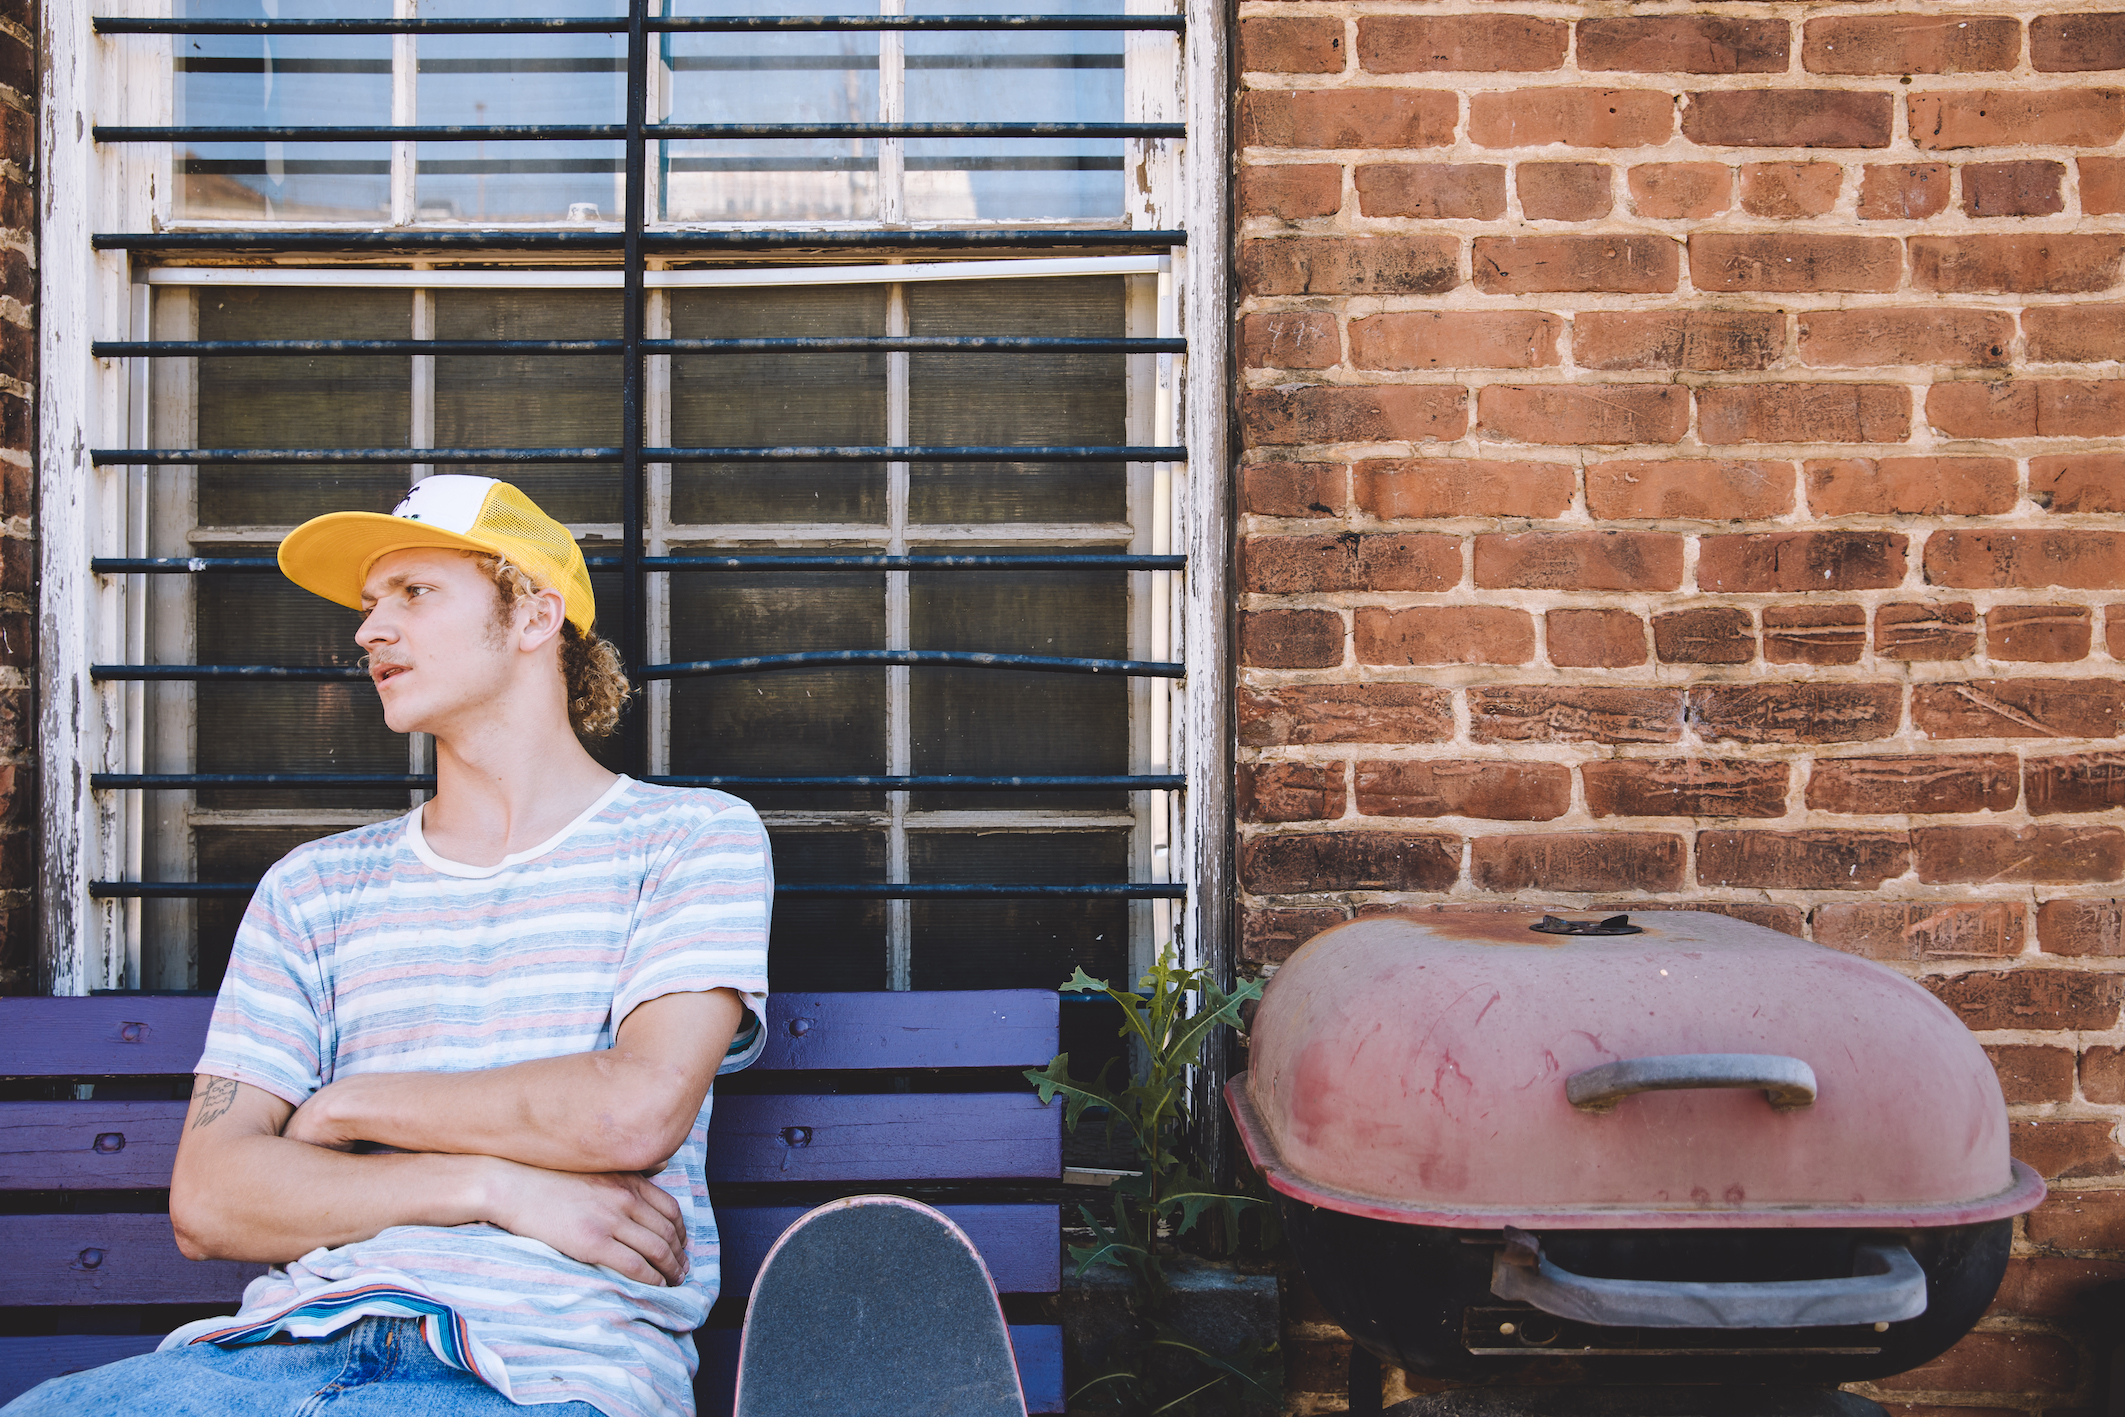 A Youth Sits With His Trusty BBQ To Represent The Millennial Idea of Safety